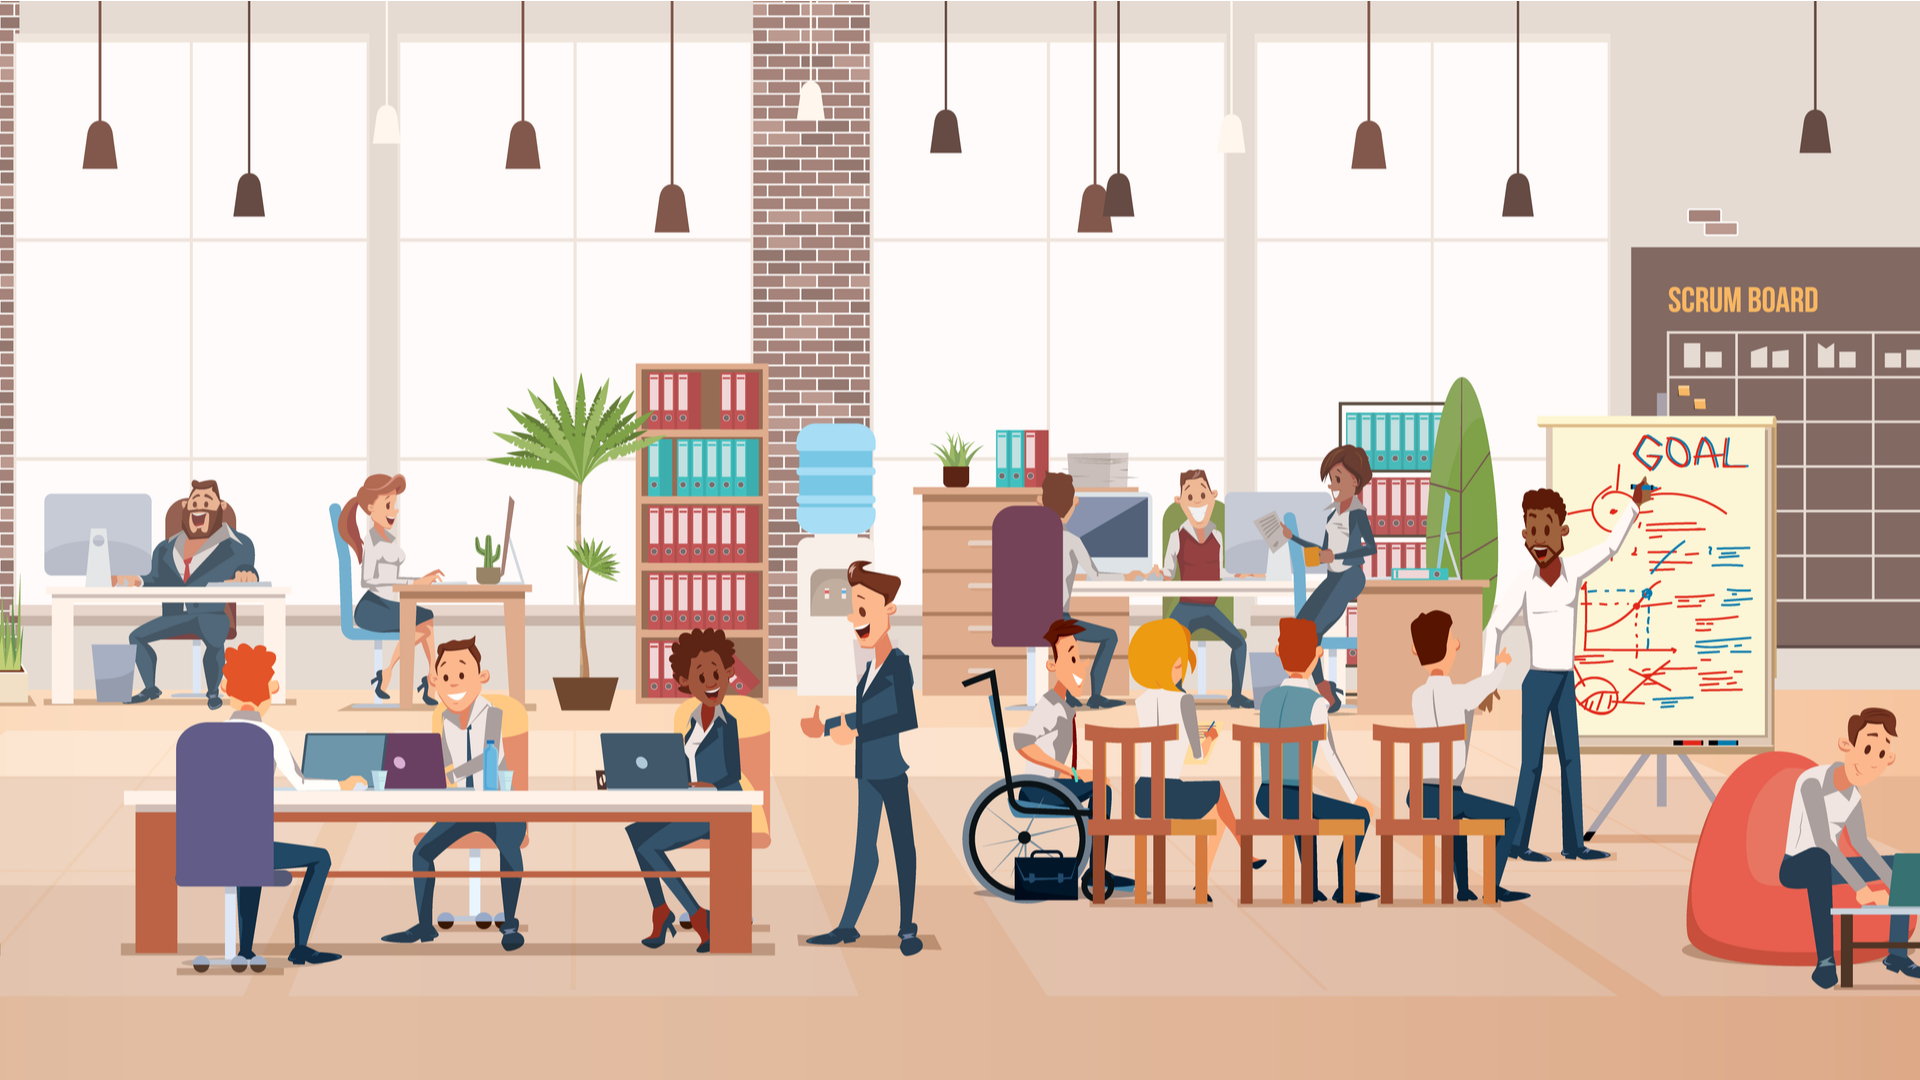 The disrupted workplace and intellectual property